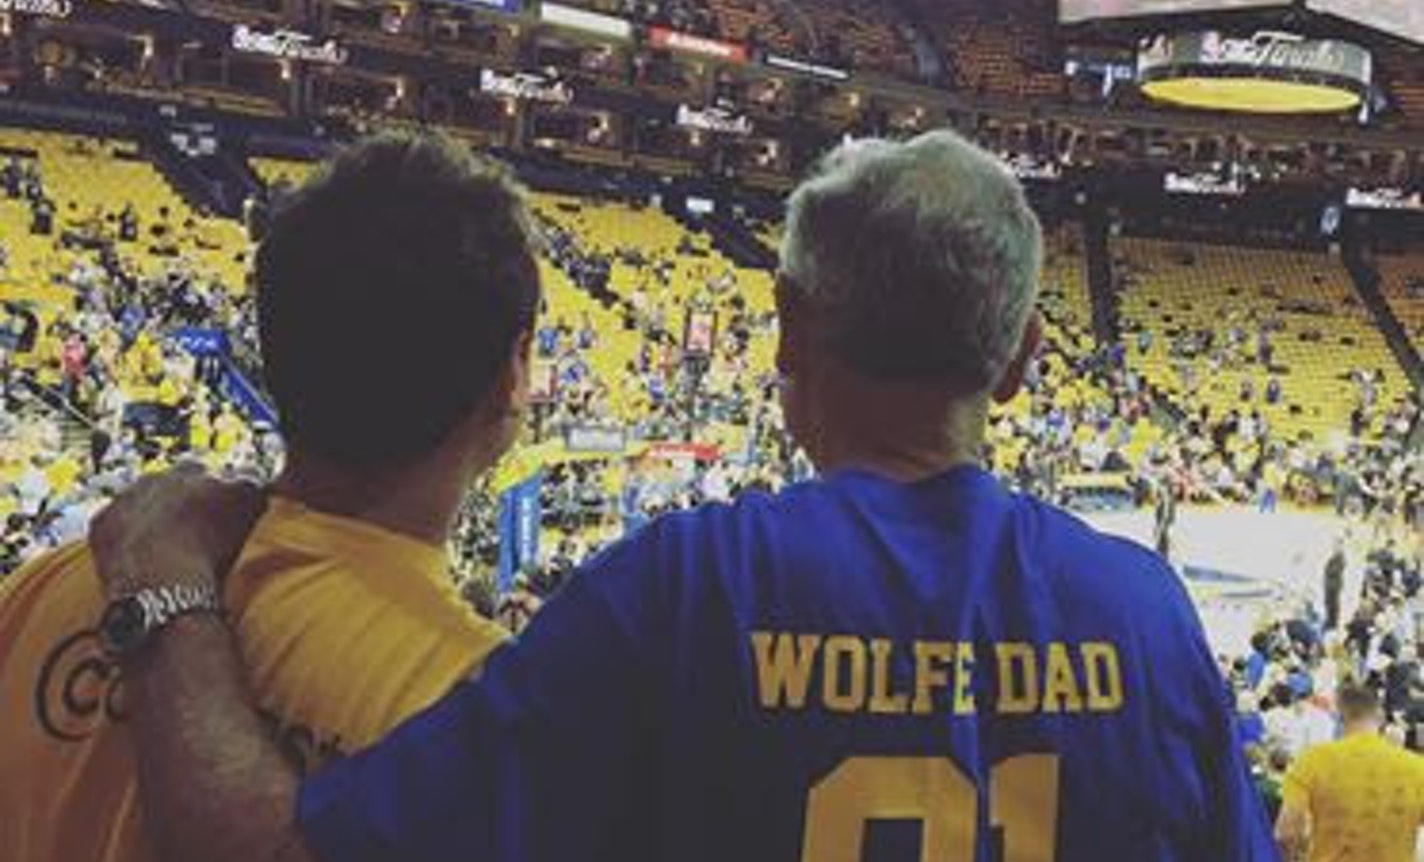 Dose of Togetherness: Brad Wolfe in Conversation w/ His Dad